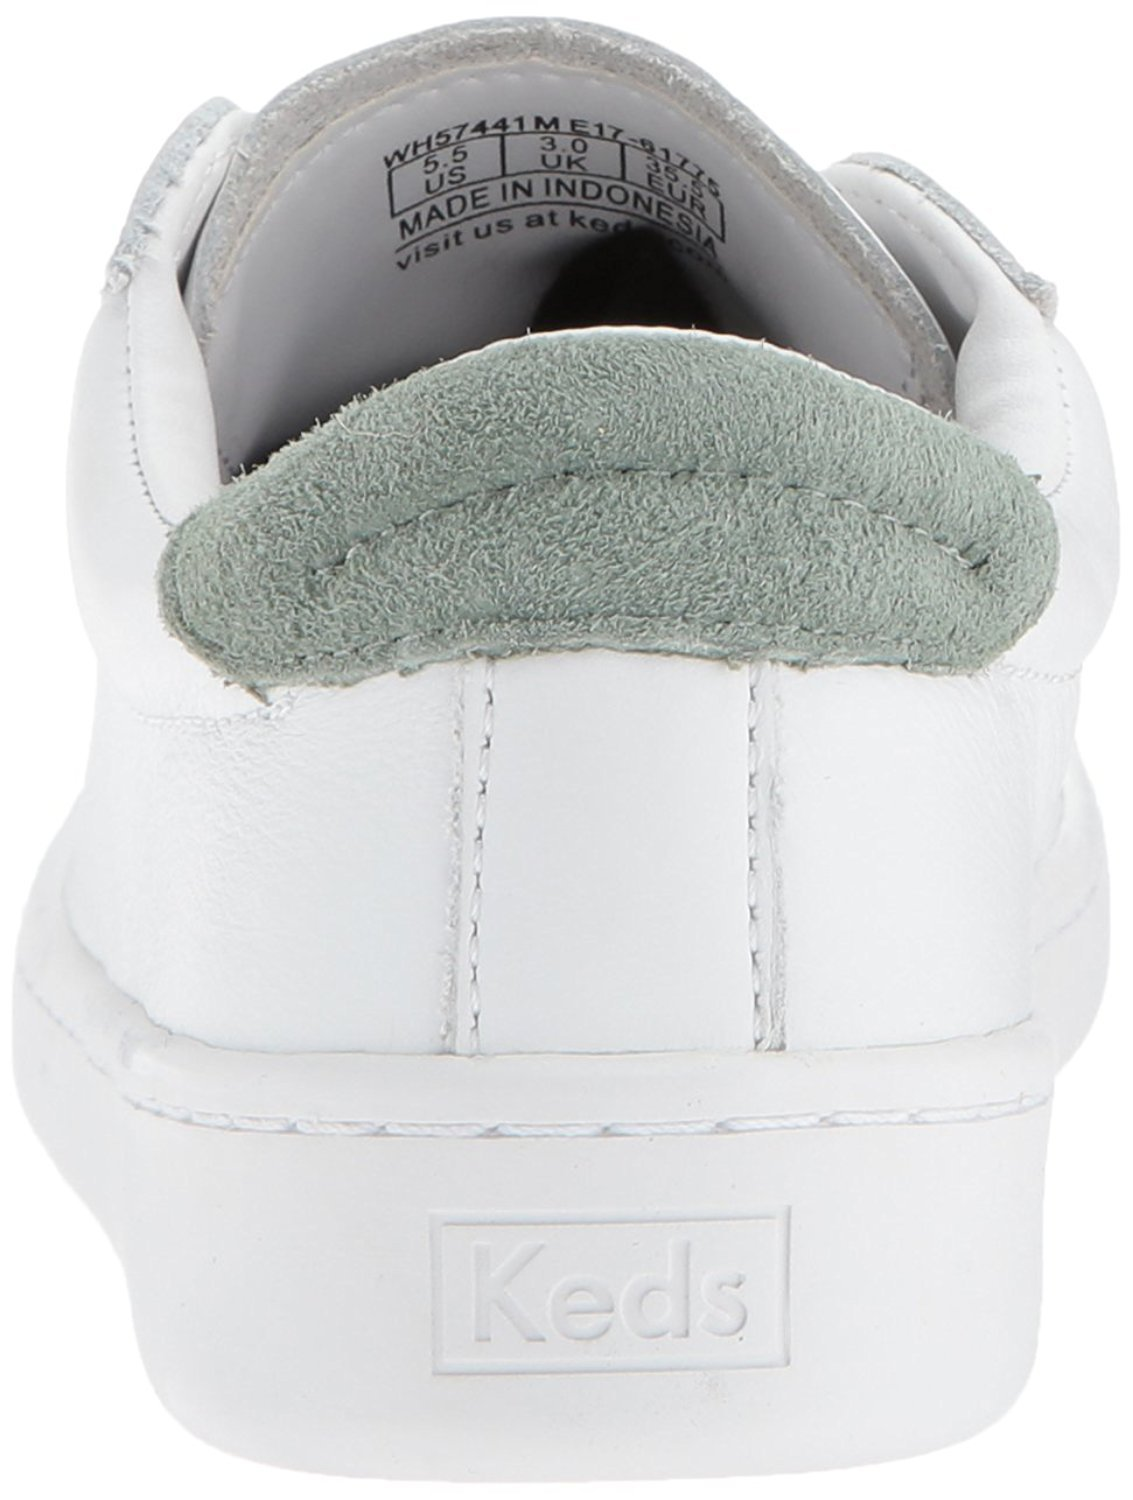 Keds Women's Ace Leather Fashion Sneaker, White/Gum, 6 M US